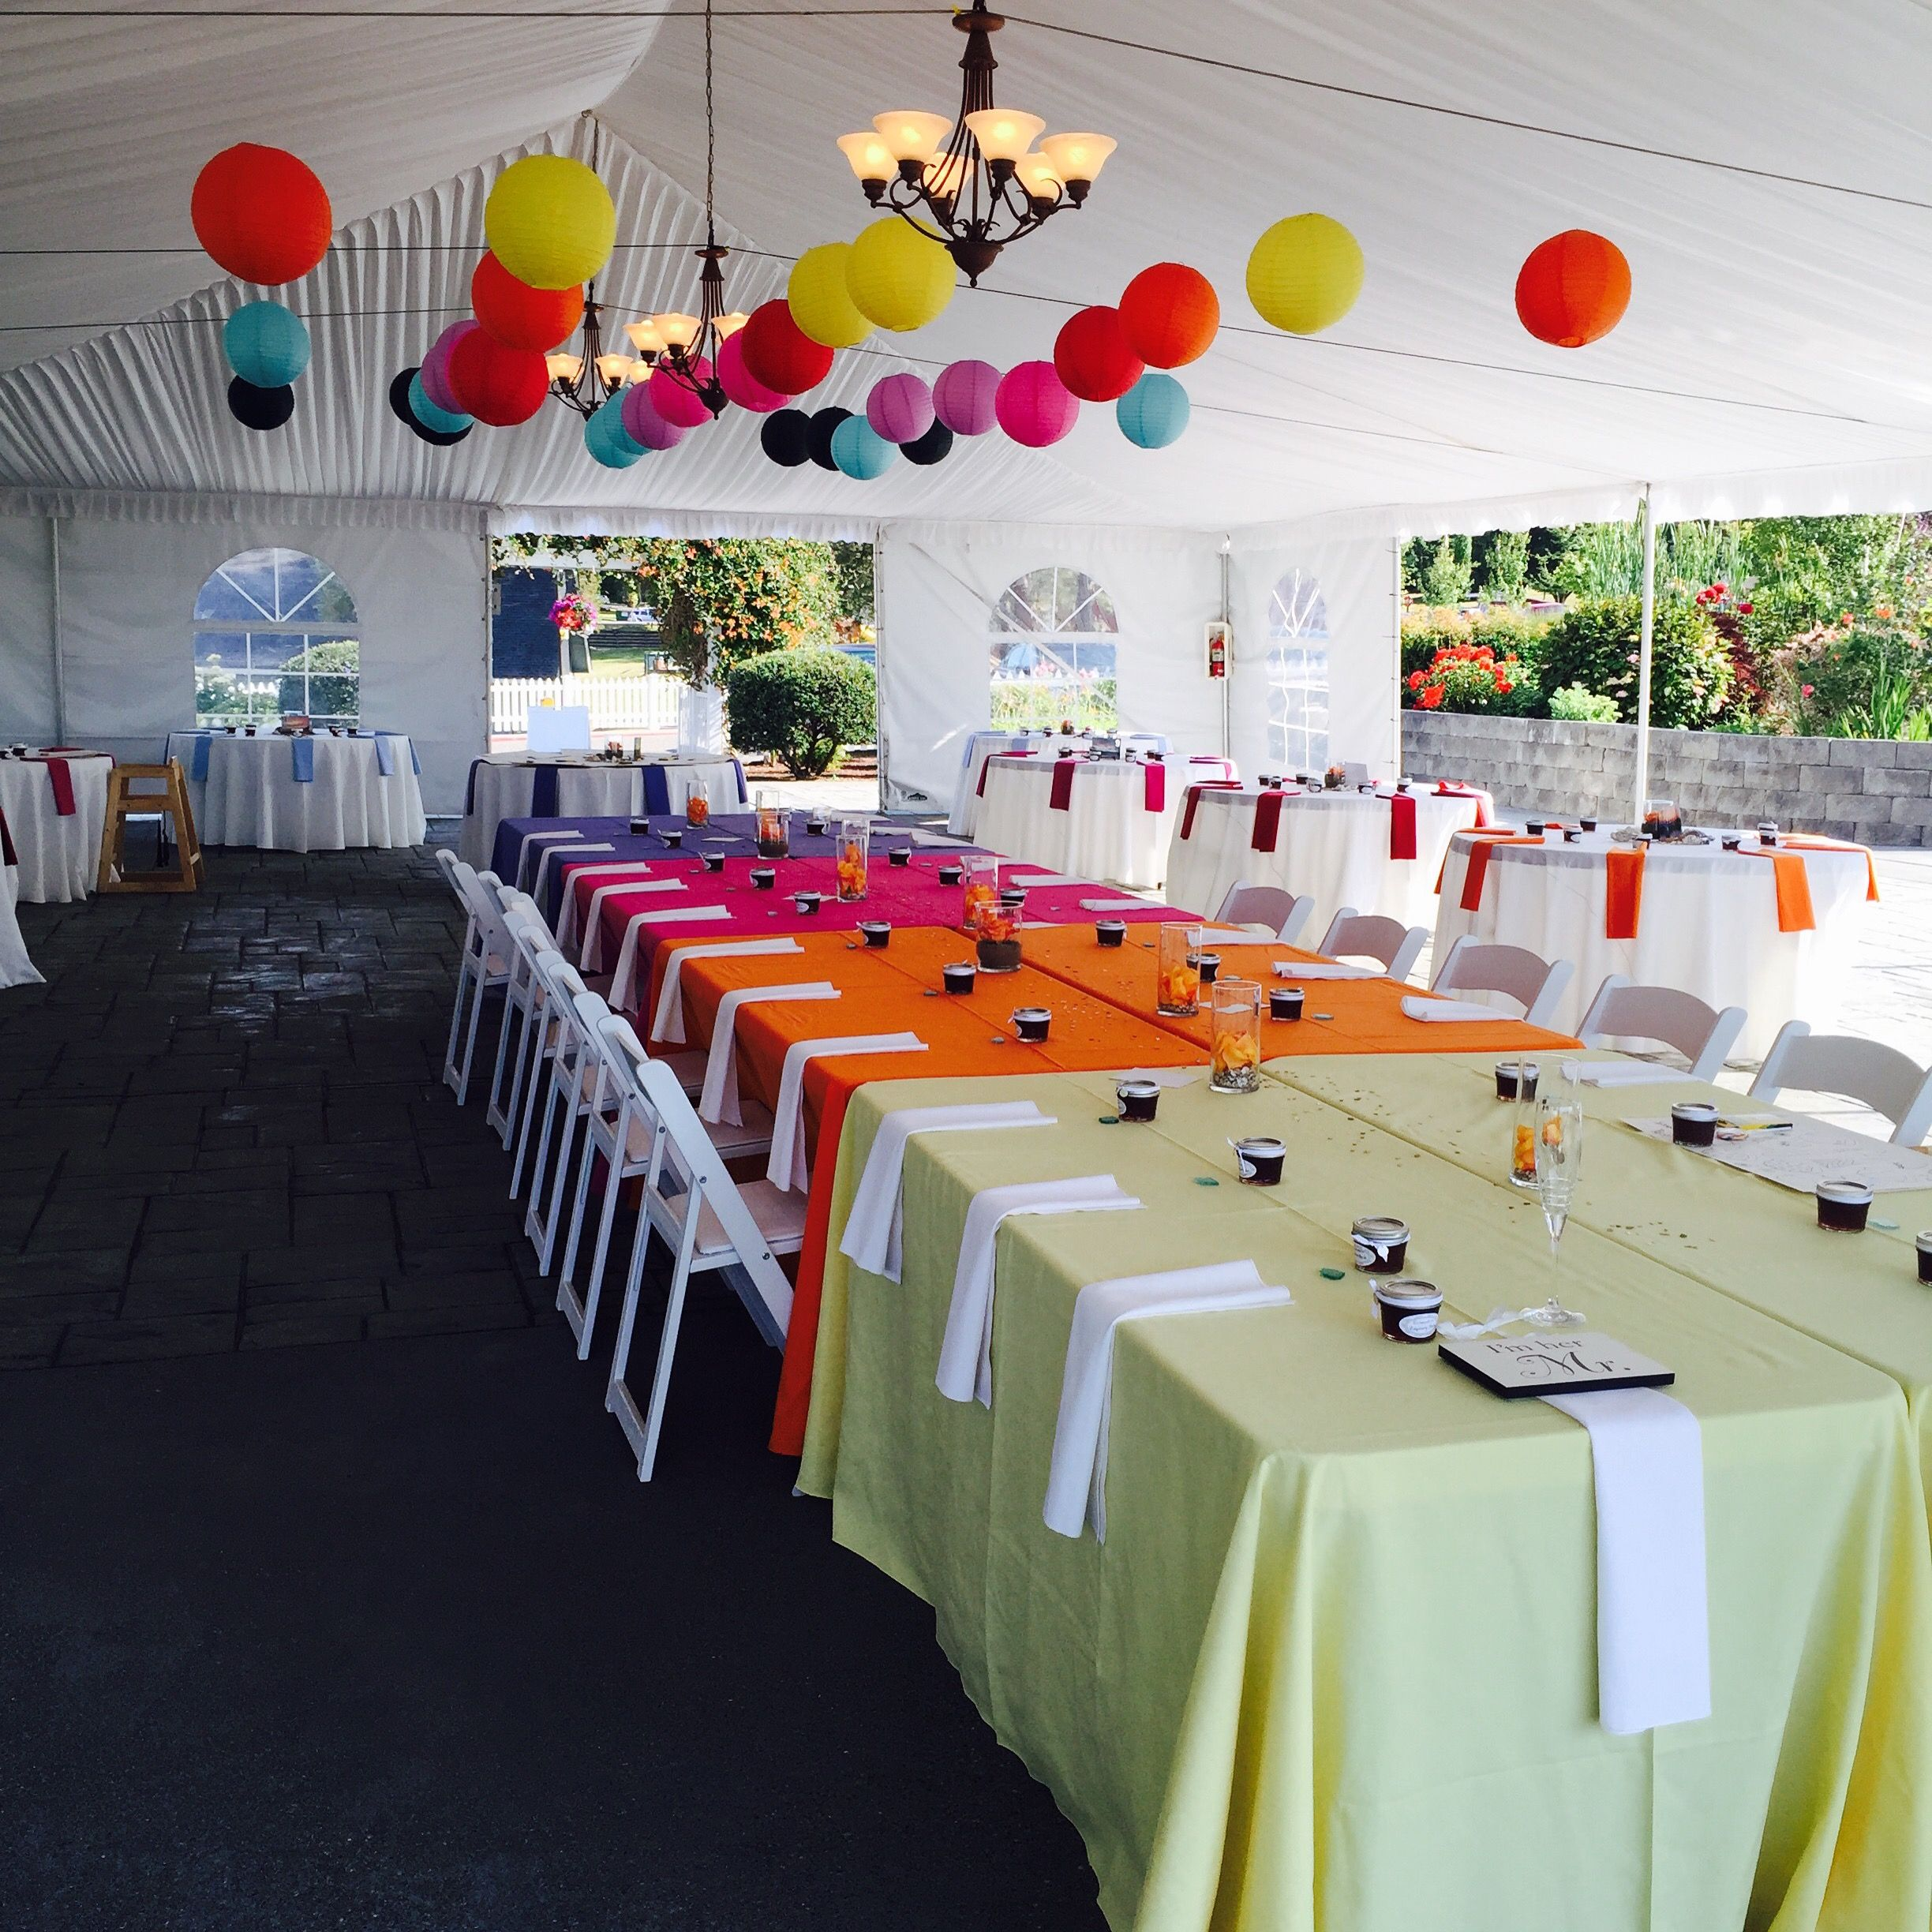 #portgamble #snuffinscatering #sunsetcolors # catering #weddingcatering #snuffins #gigharbor #Tacomawedding #headtable